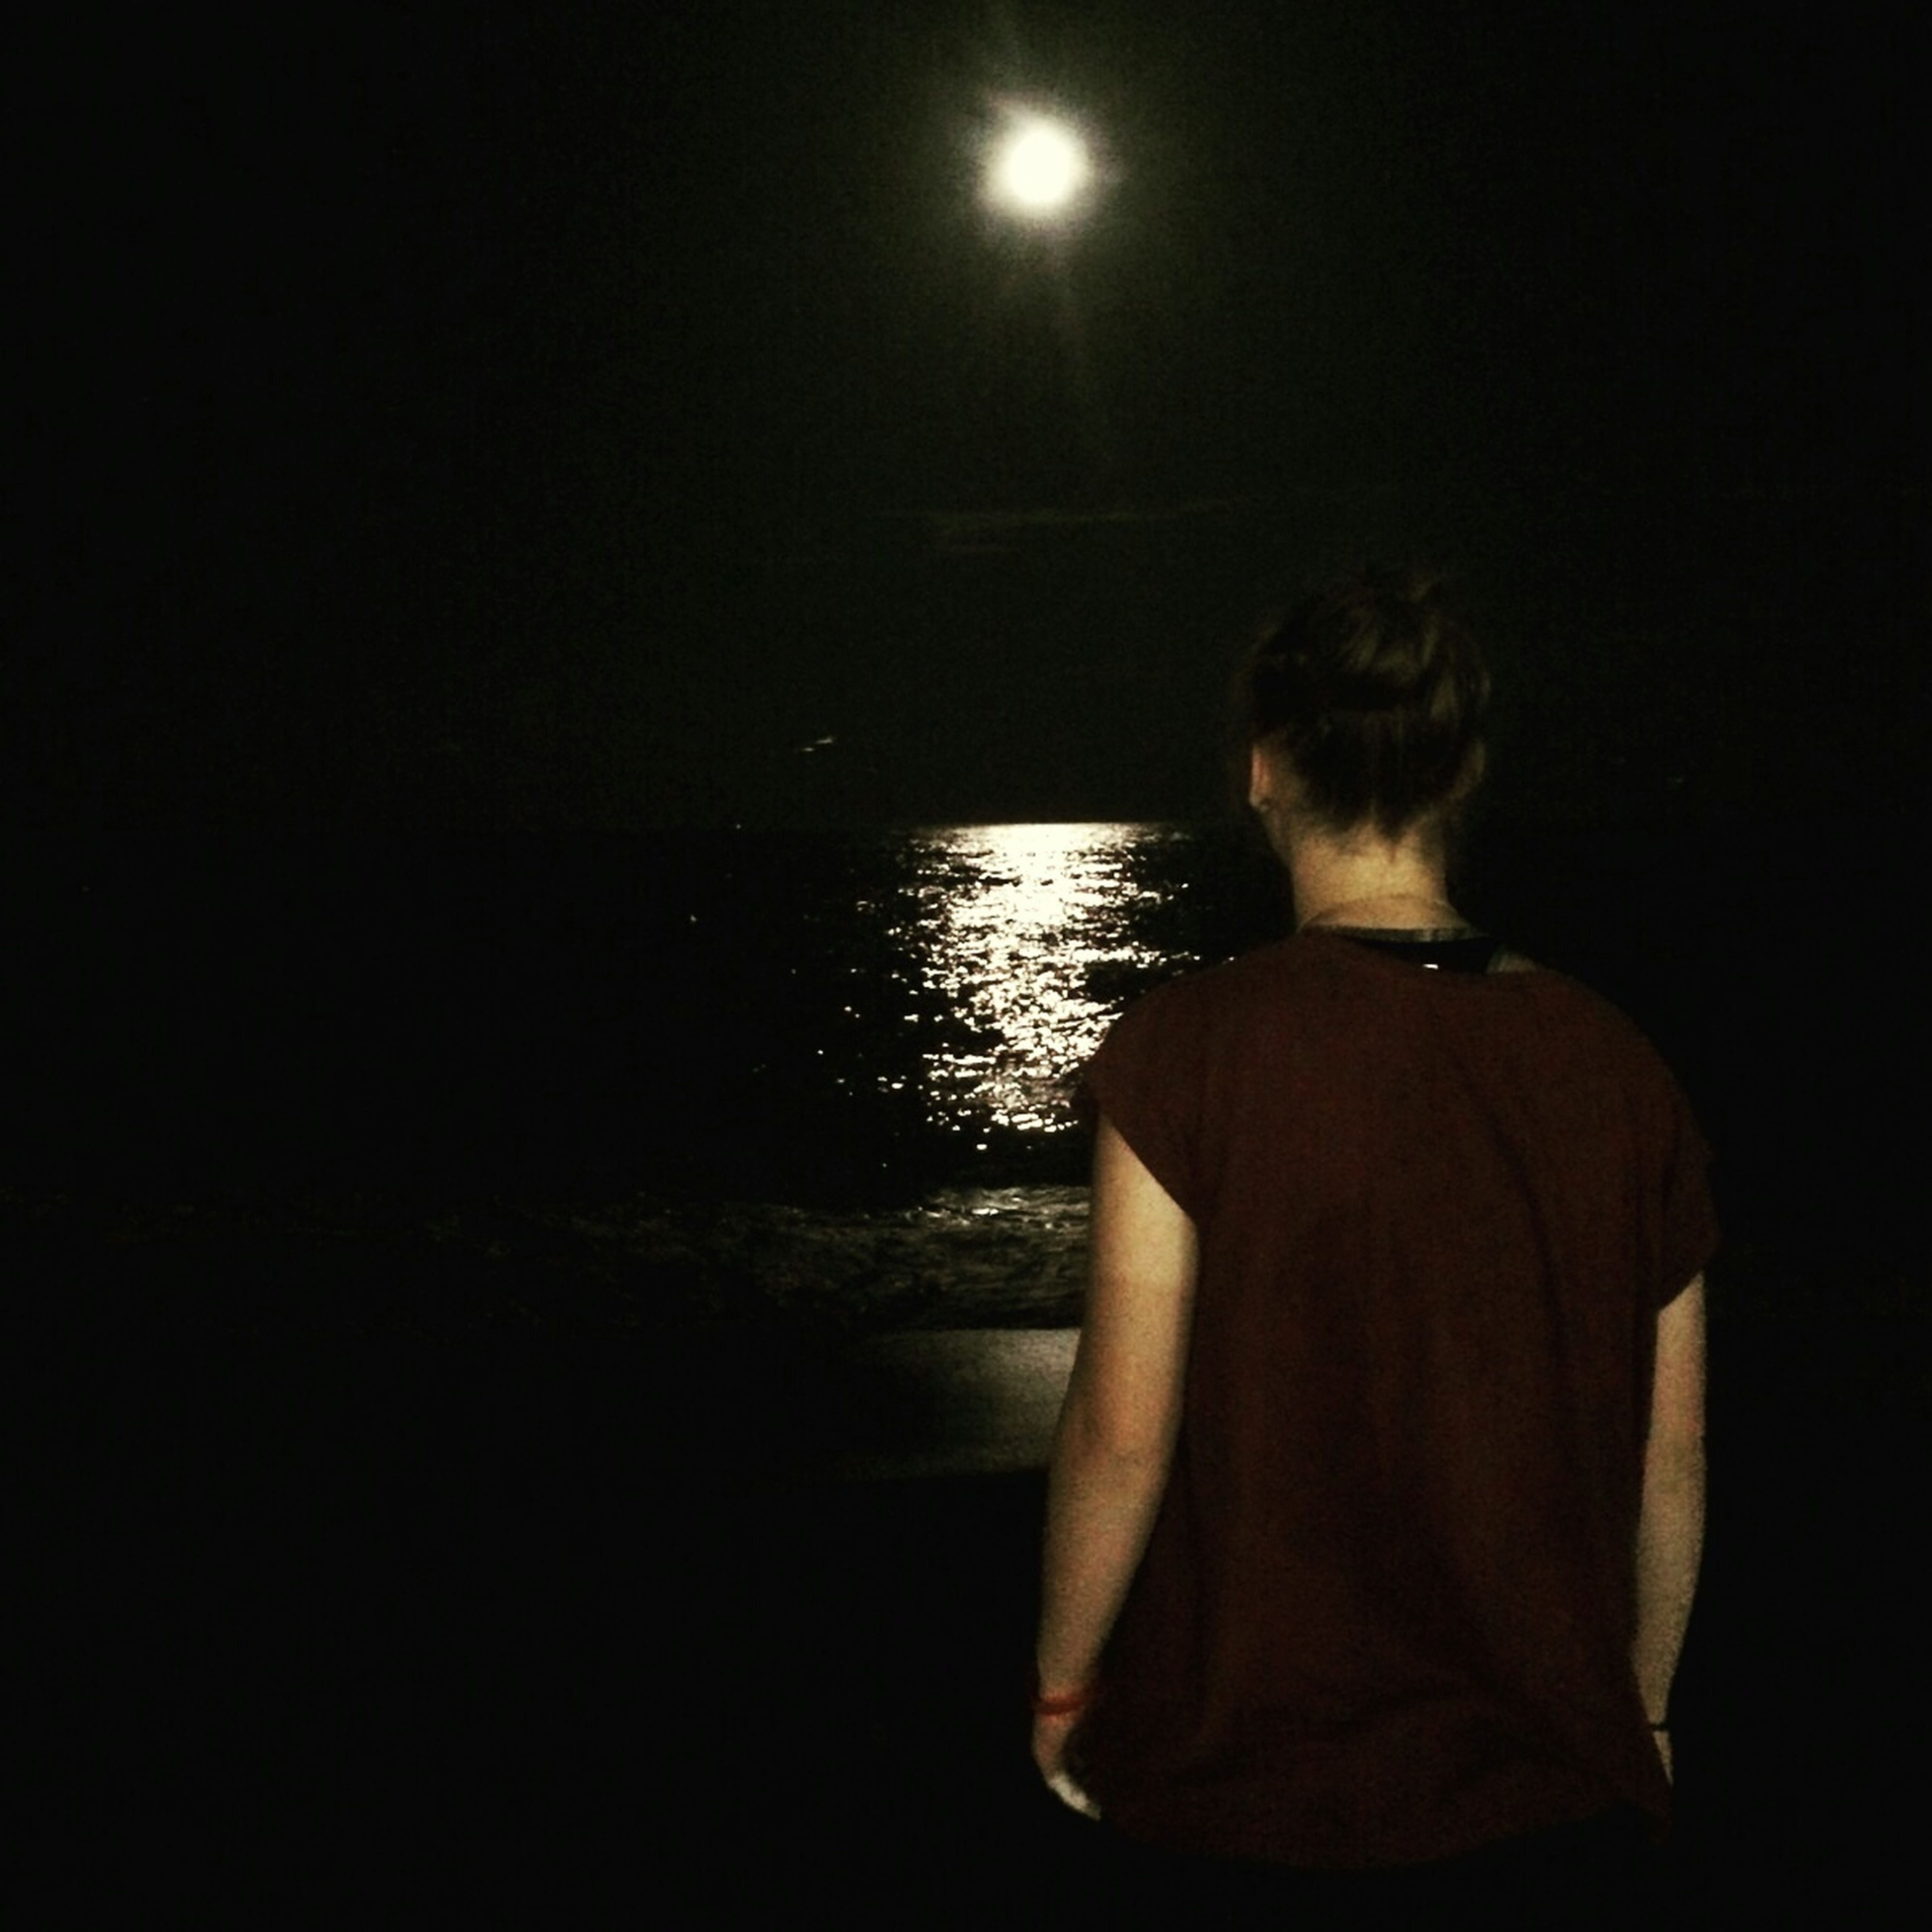 night, standing, lifestyles, dark, illuminated, leisure activity, rear view, copy space, casual clothing, water, person, full length, three quarter length, waist up, silhouette, contemplation, side view, men